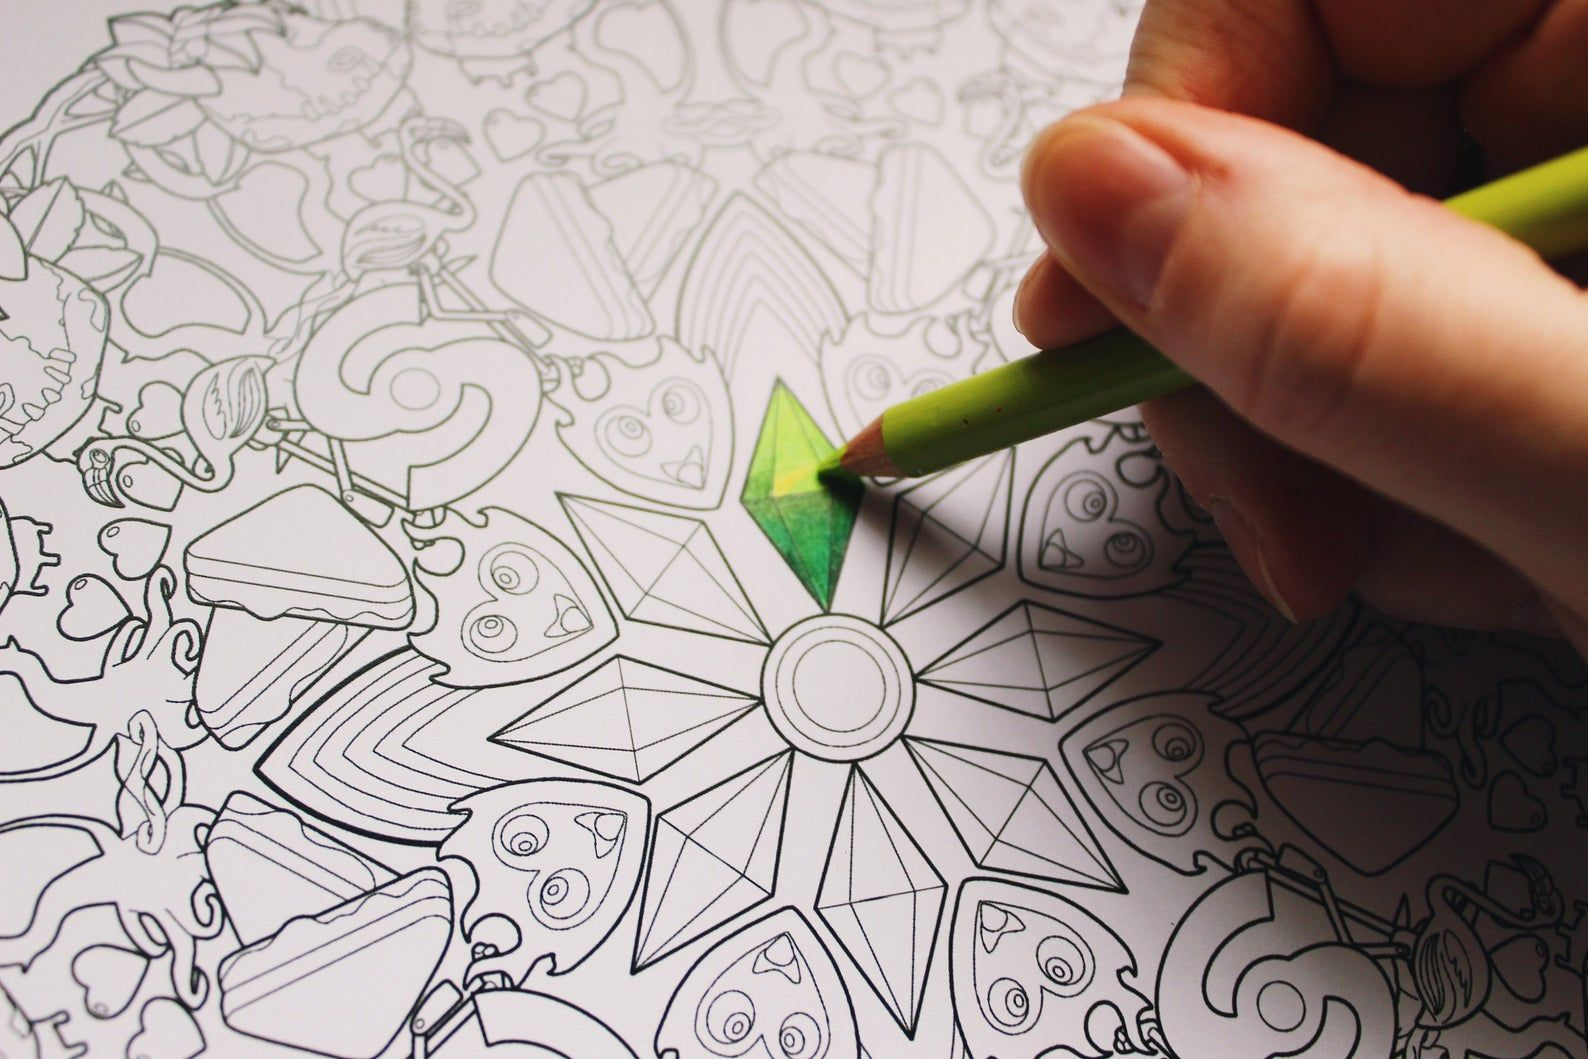 The Sims Colouring Page Digital Download Coloring Pages